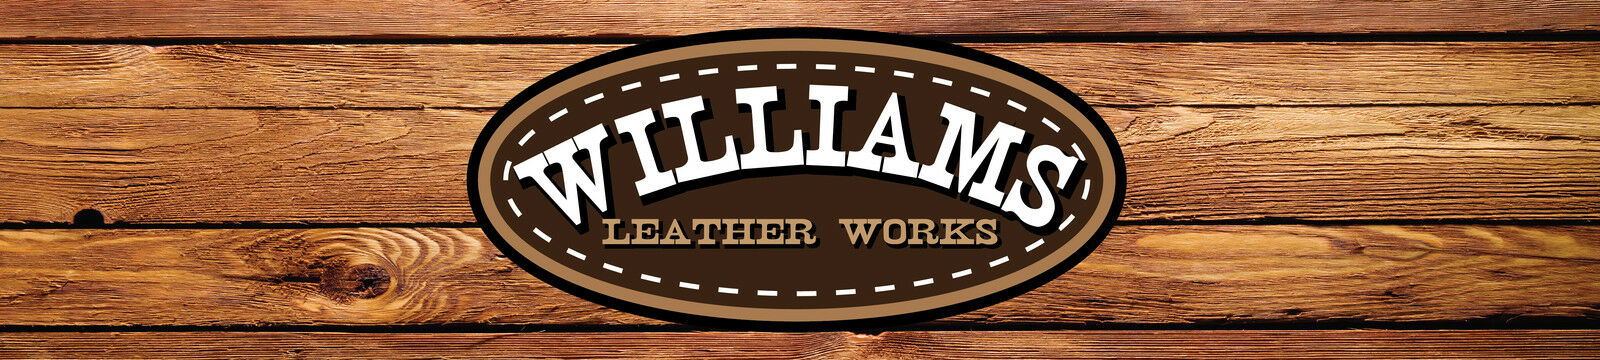 WILLIAMS LEATHER WORKS